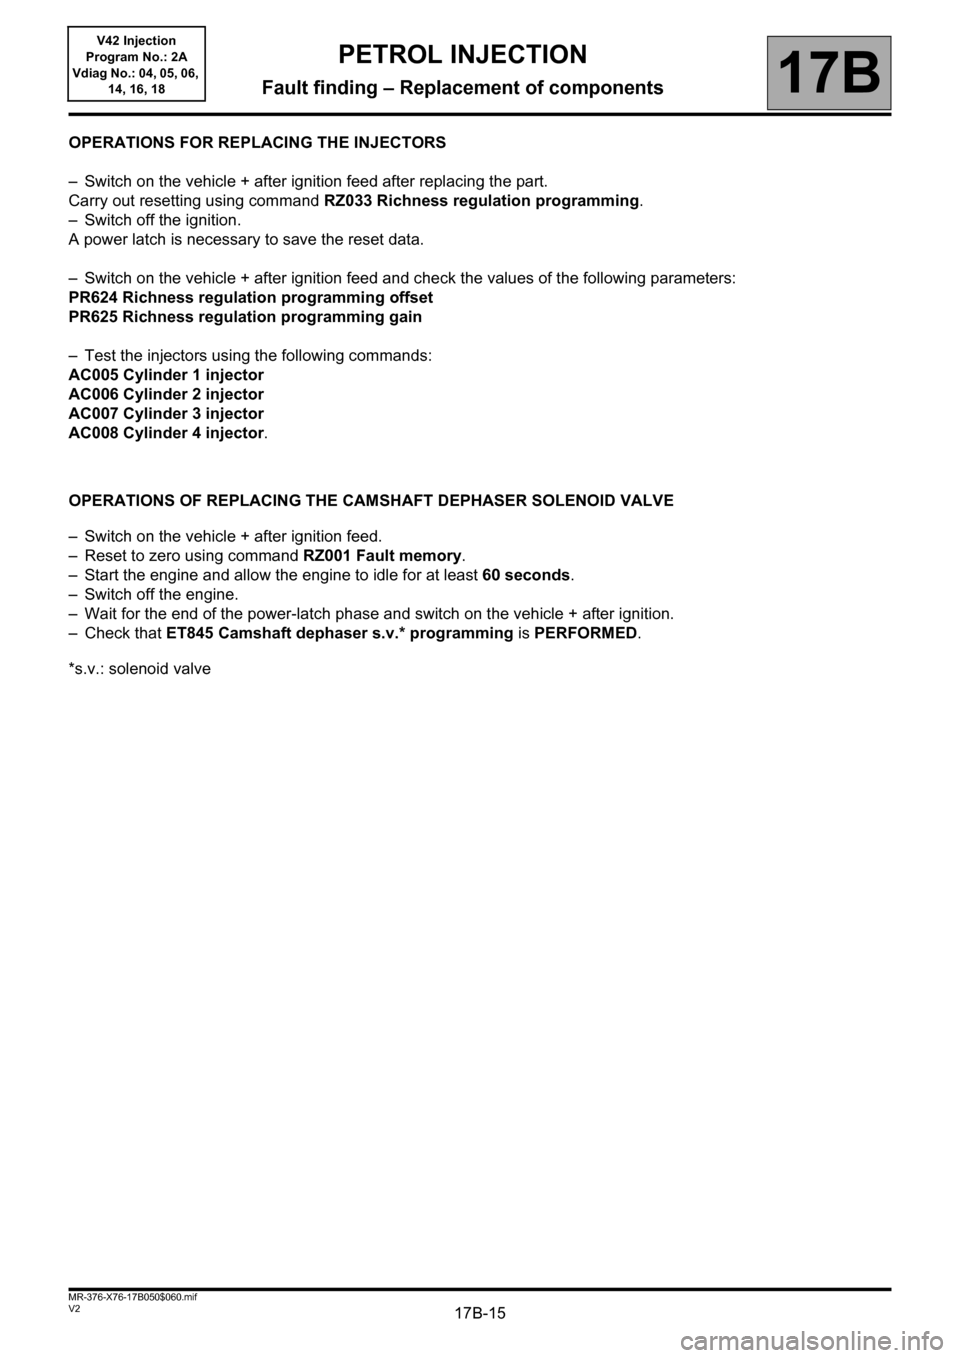 RENAULT KANGOO 2013 X61 / 2.G Petrol V42 Injection Workshop Manual, Page 15